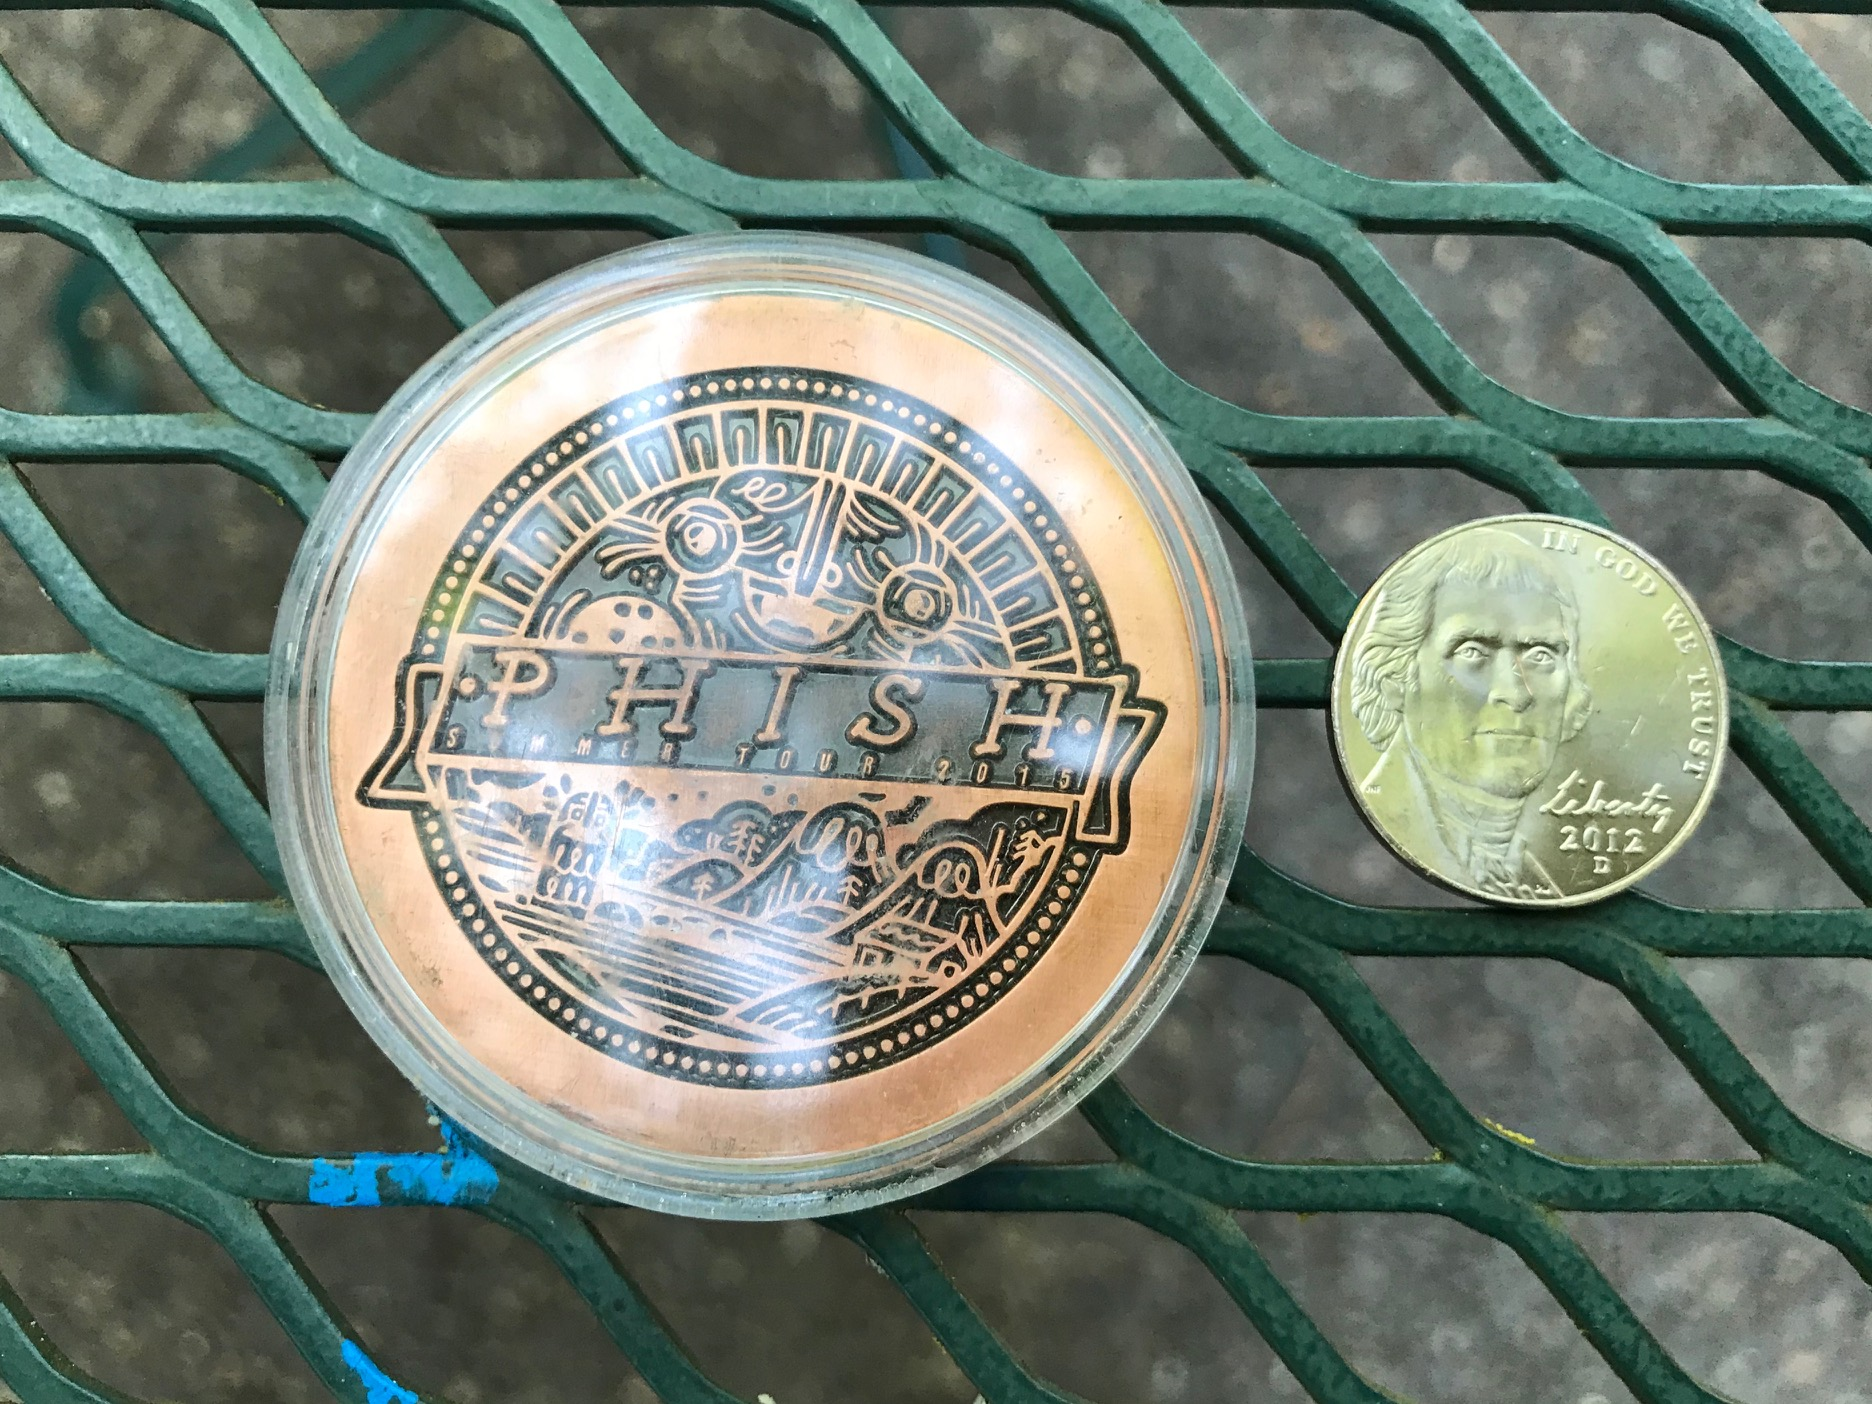 2015 Phish Summer Tour Collectible Coin, Bend Oregon